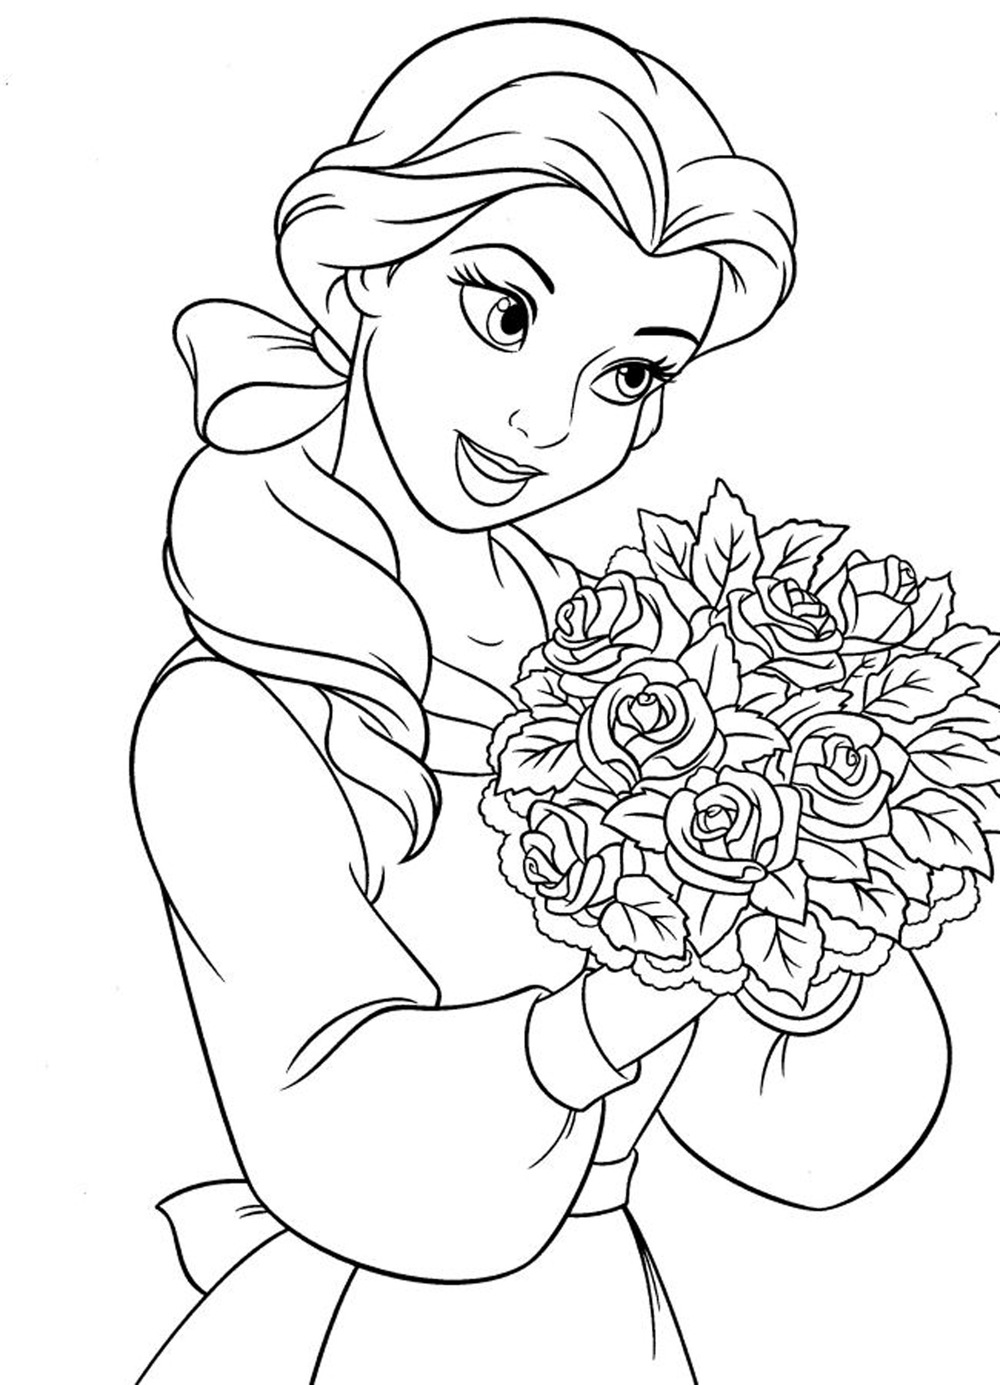 Disney Coloring Pages Free Disney Princess Tiana Printable Coloring Page